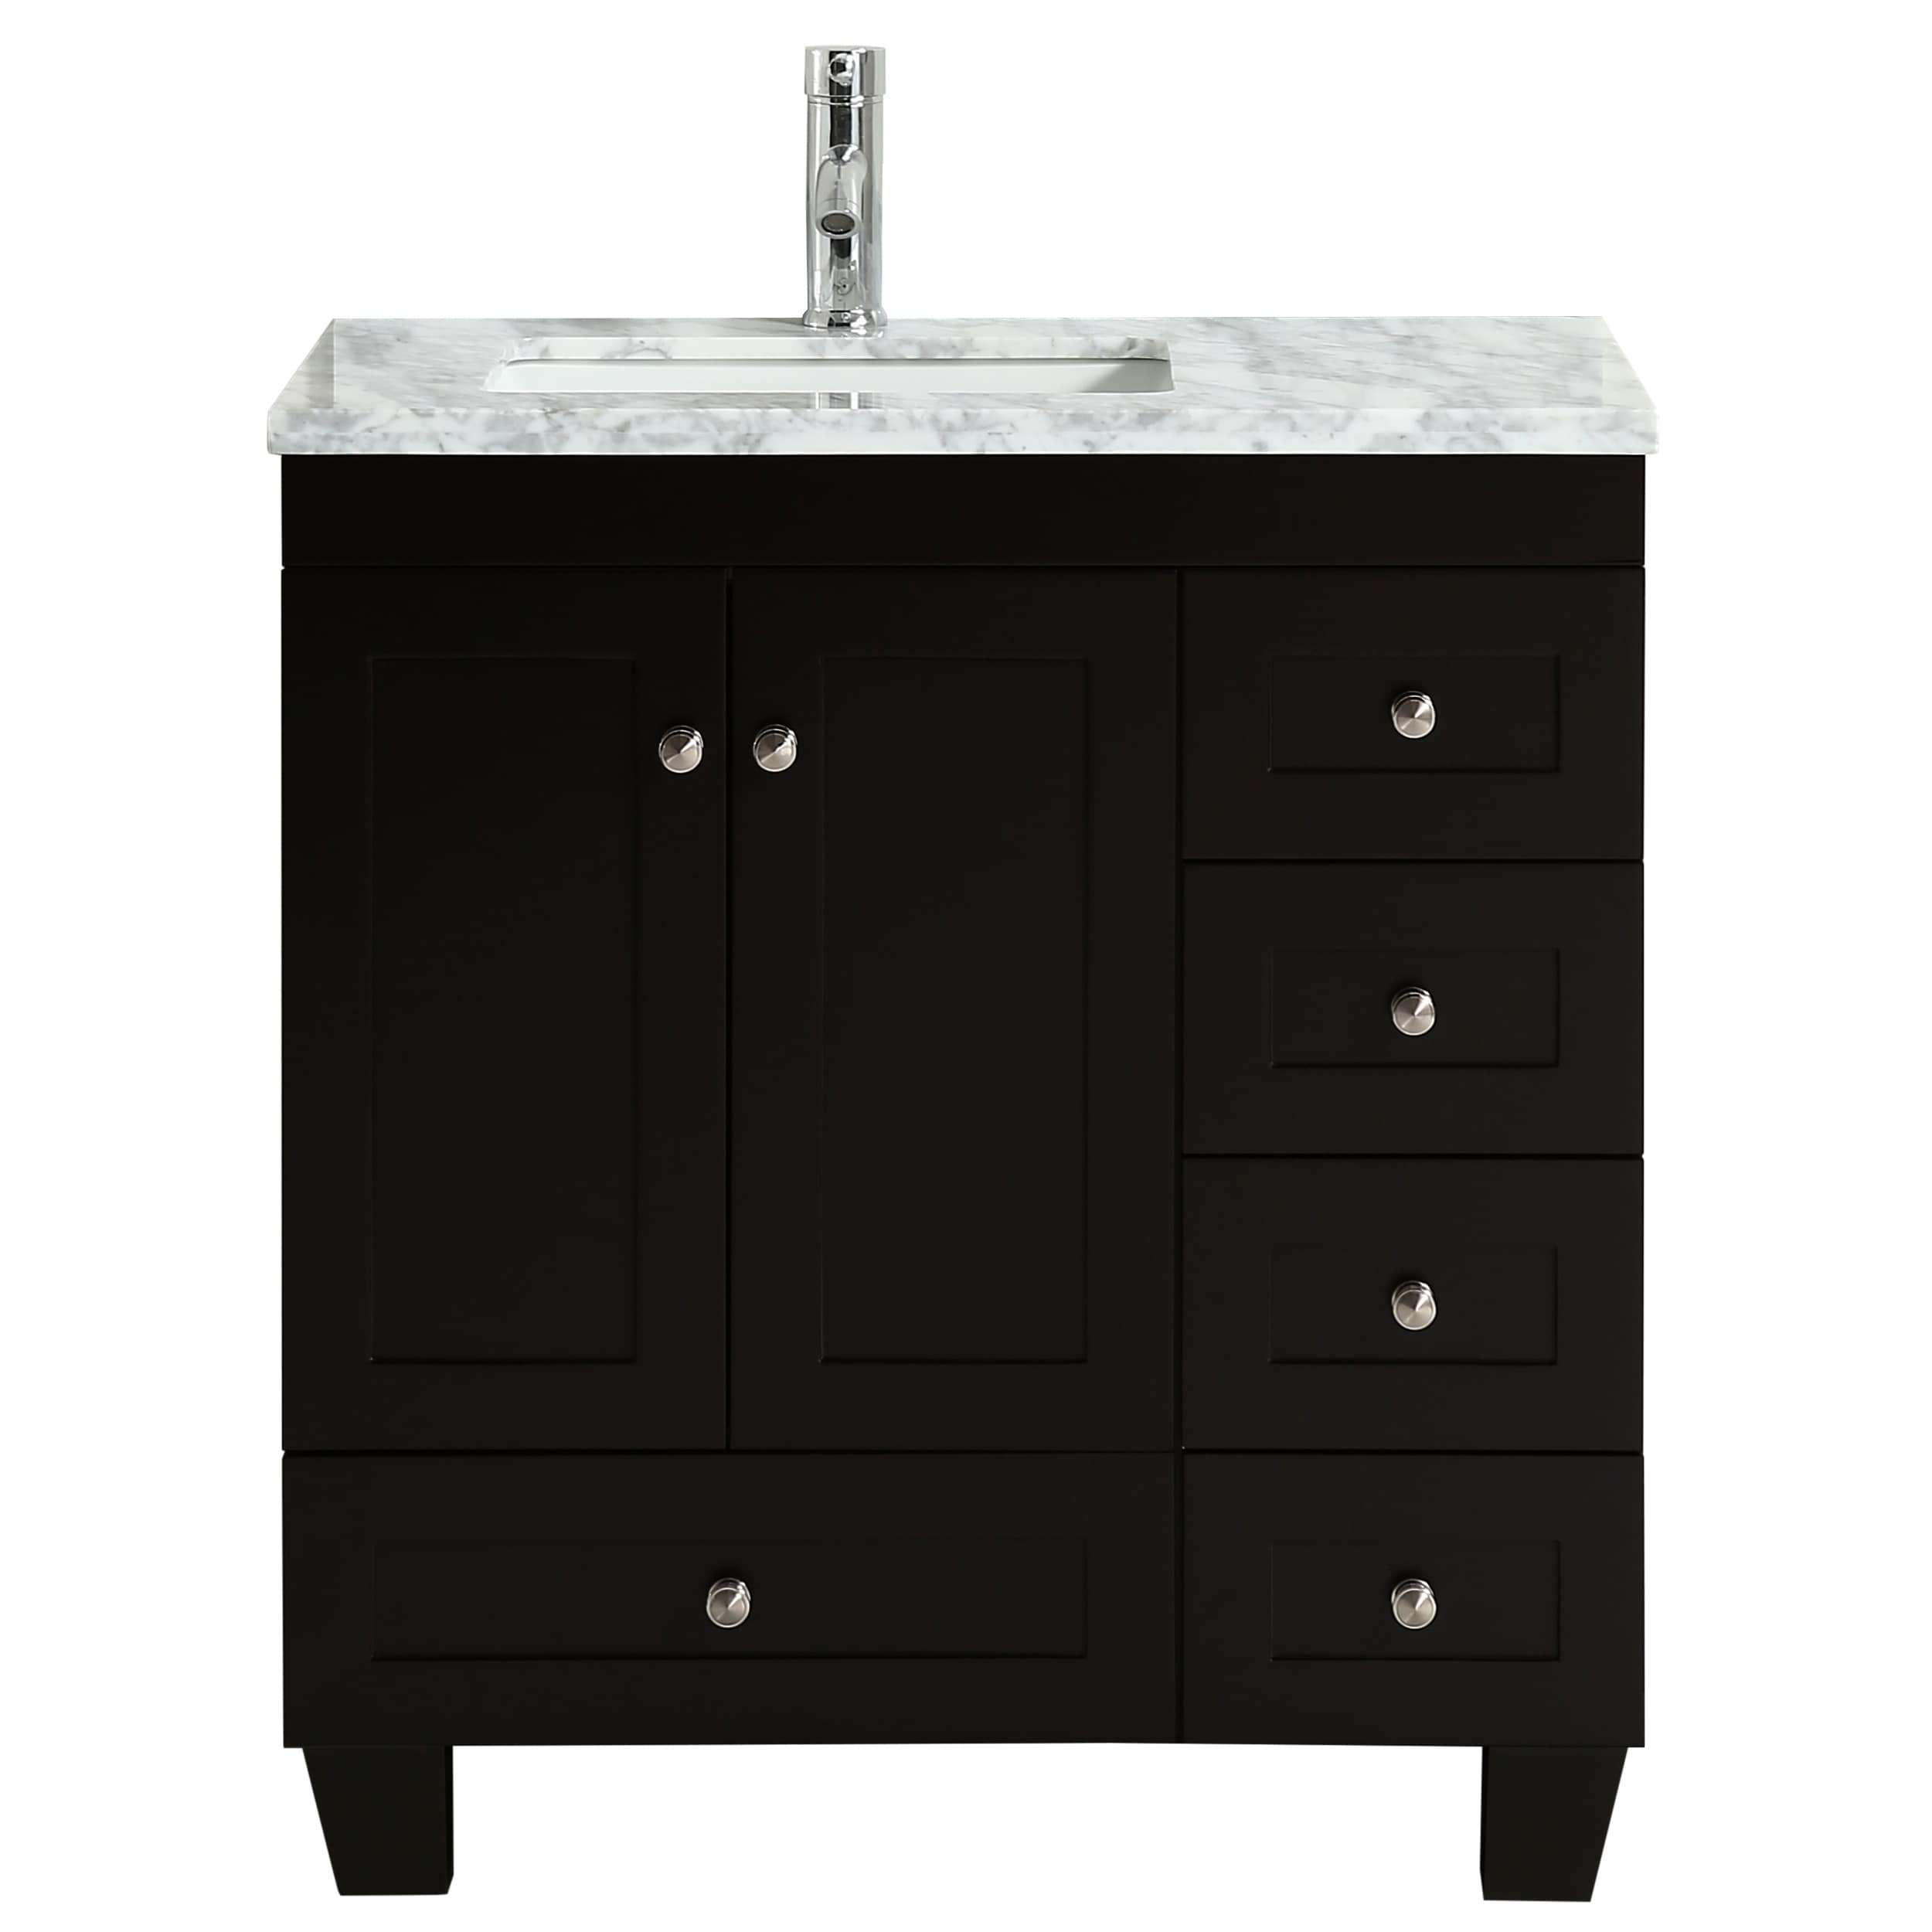 Eviva Happy 30 Inch X 18 Inch Espresso Transitional Vanity With White Carrara Marble Countertop And Undermount Porcelain Sink Overstock 20817210